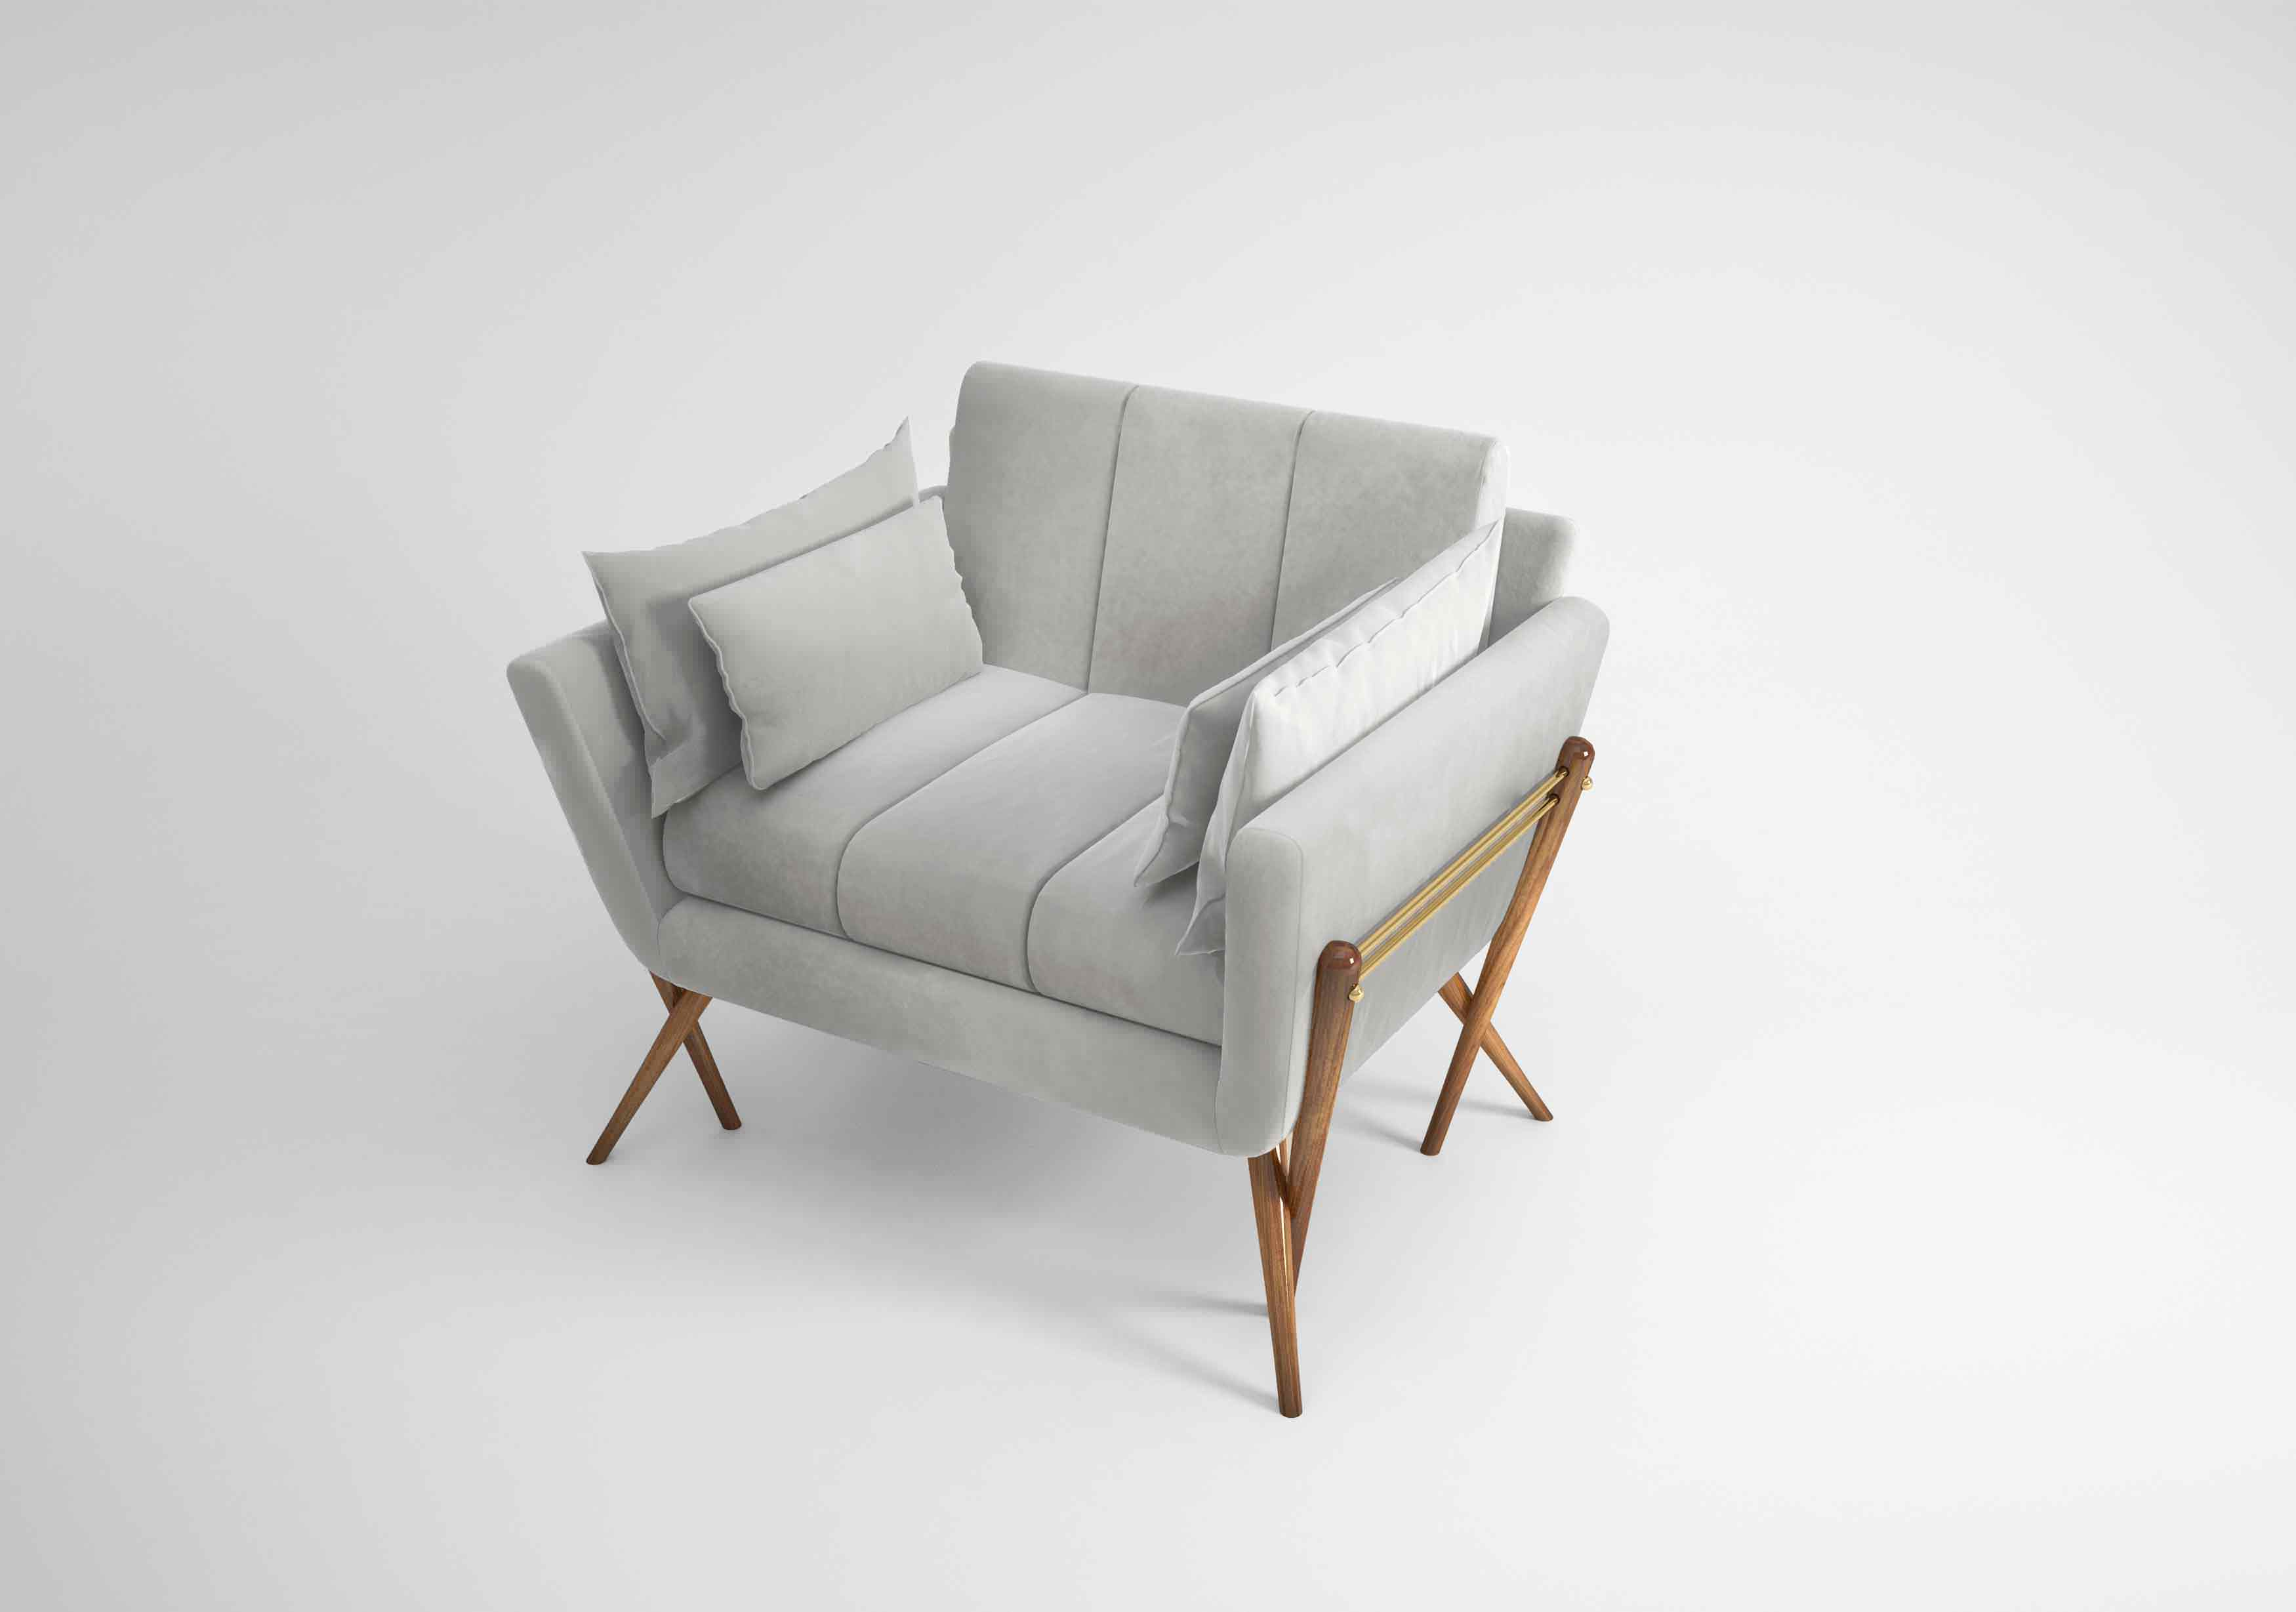 Nukie Armchair - Products